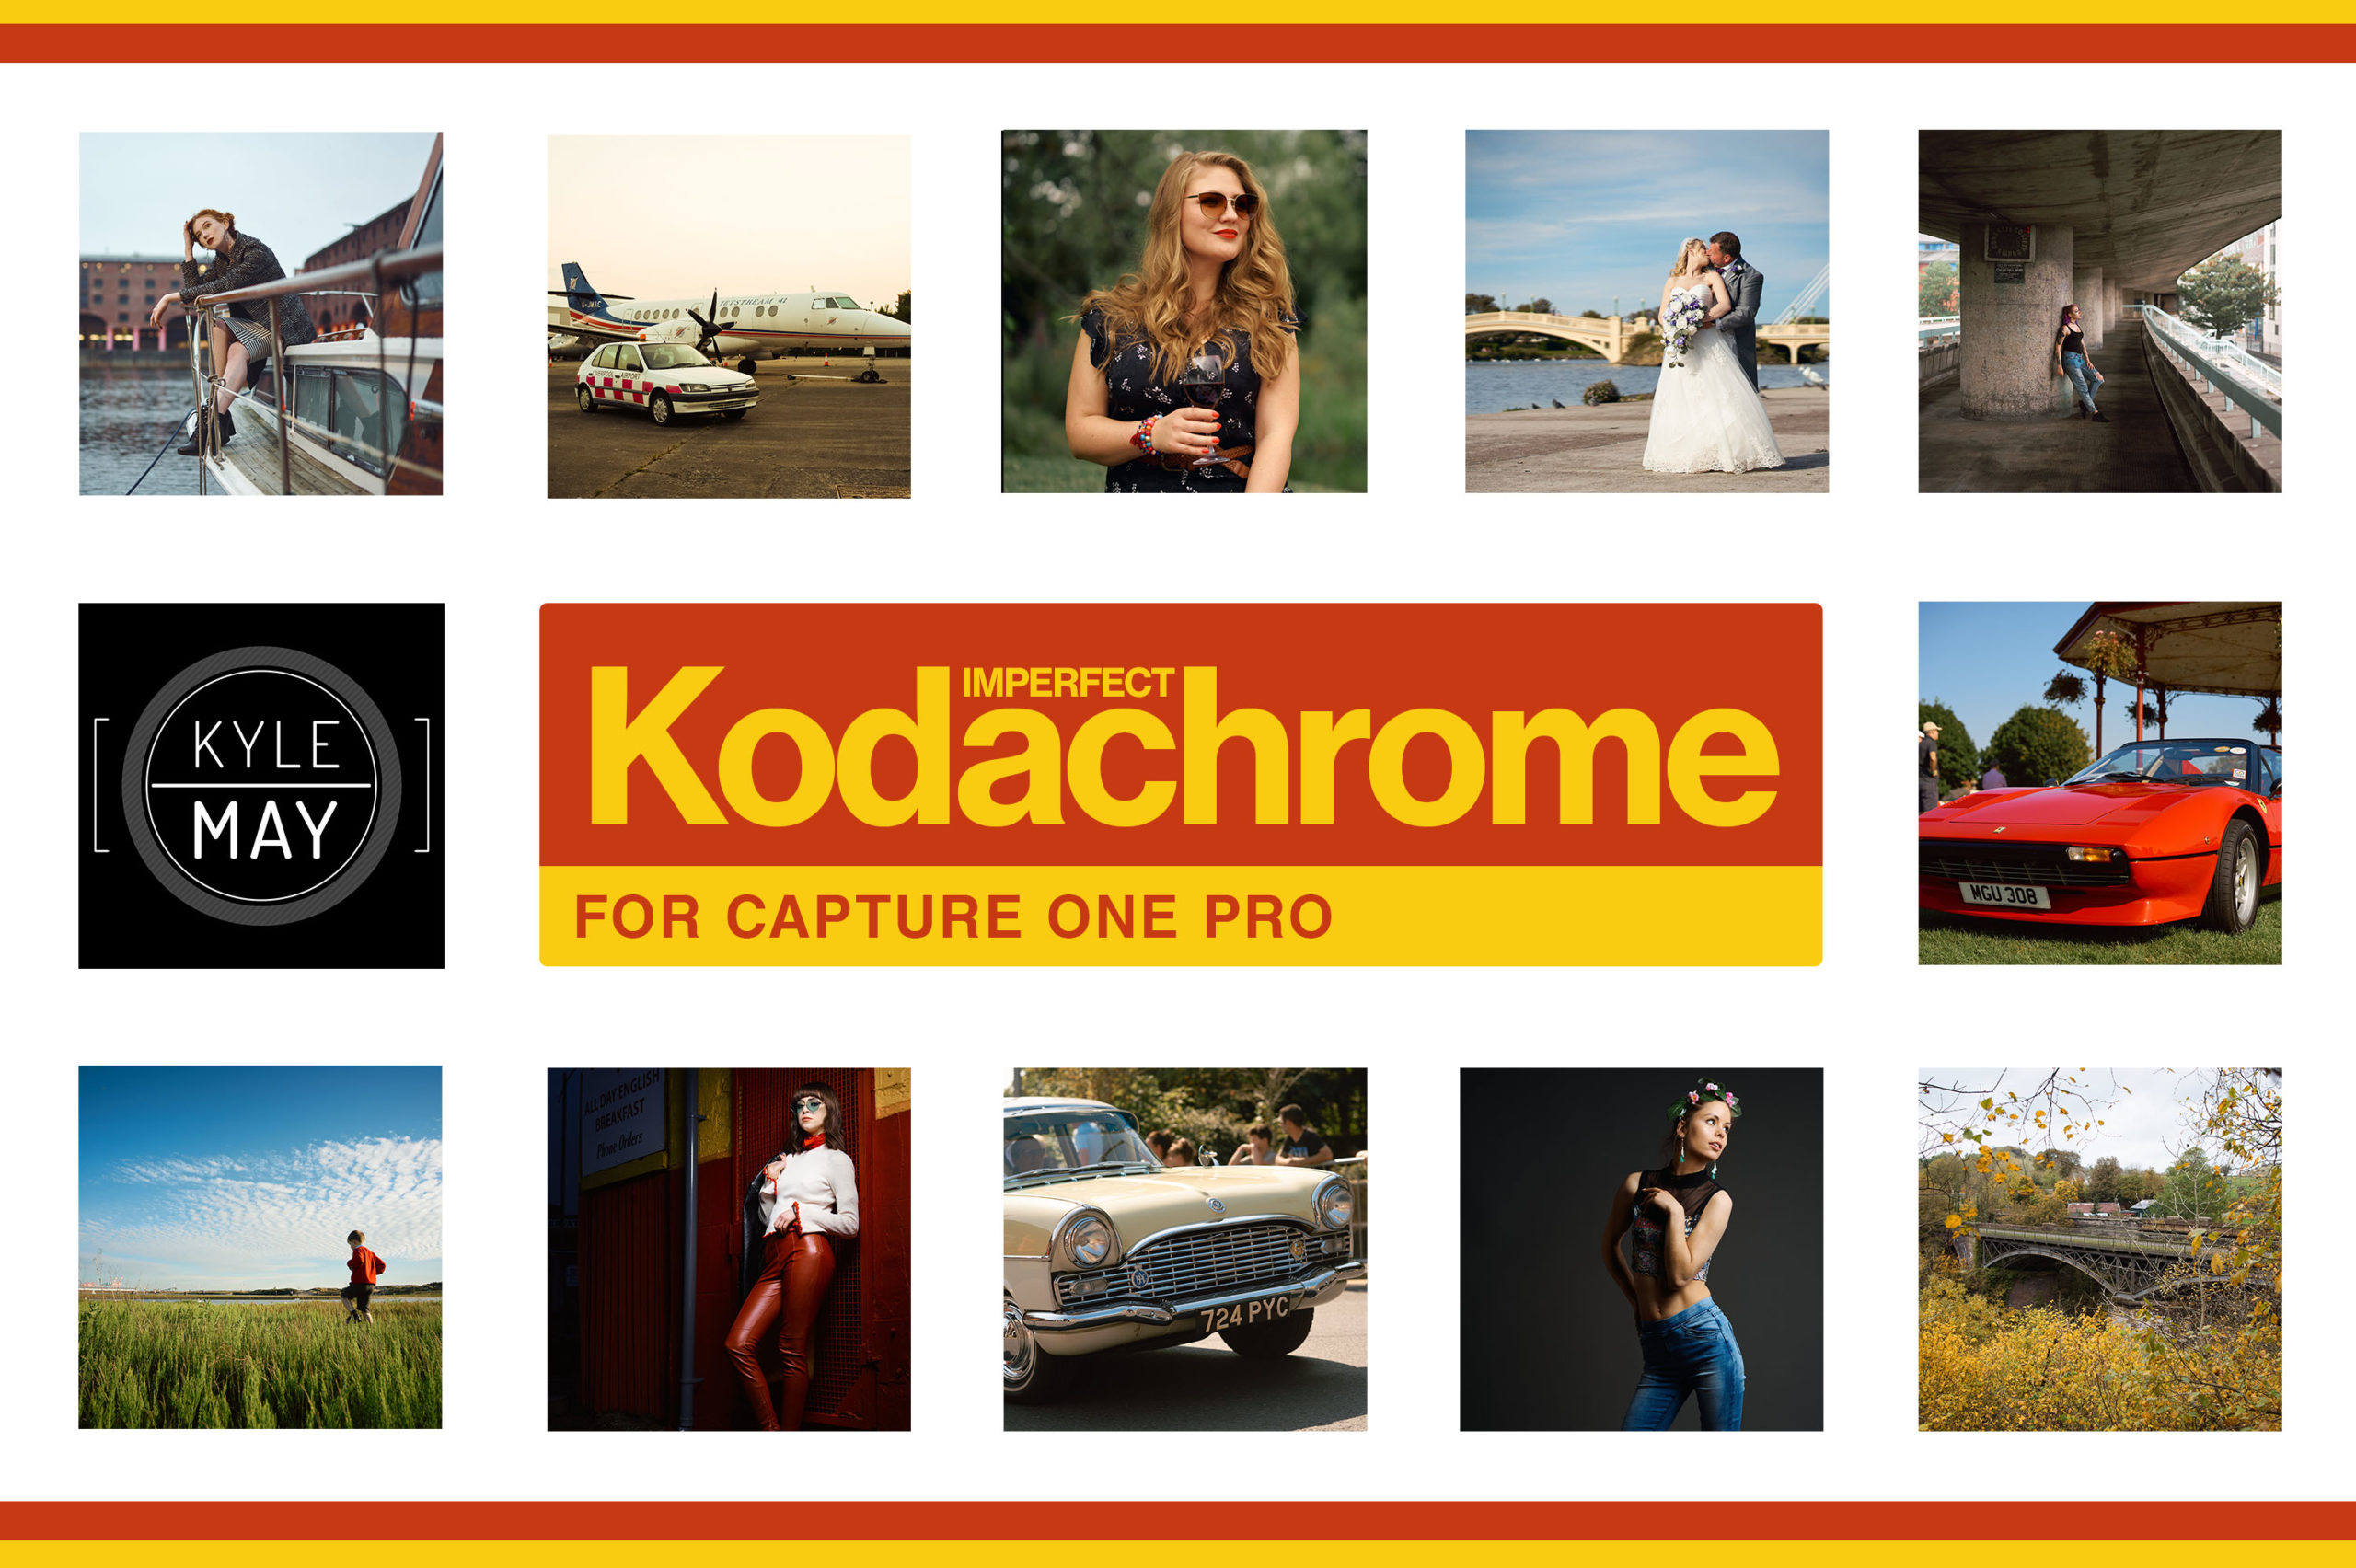 imperfect kodachrome for capture one pro